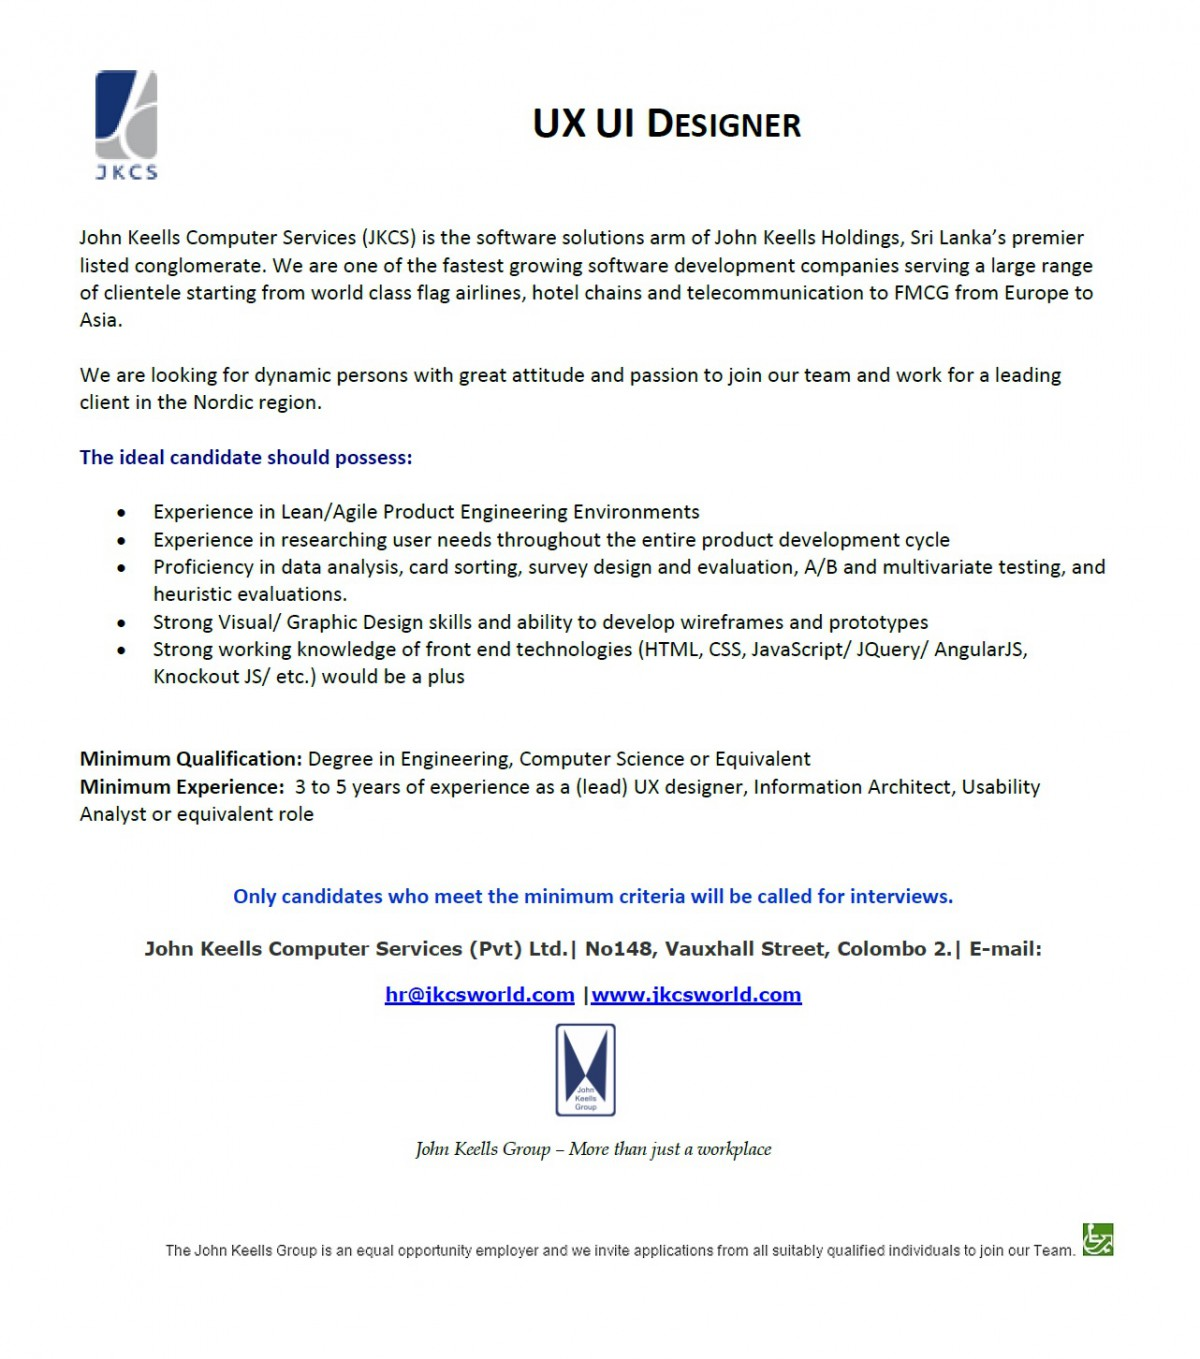 ux ui designer job vacancy in sri lanka